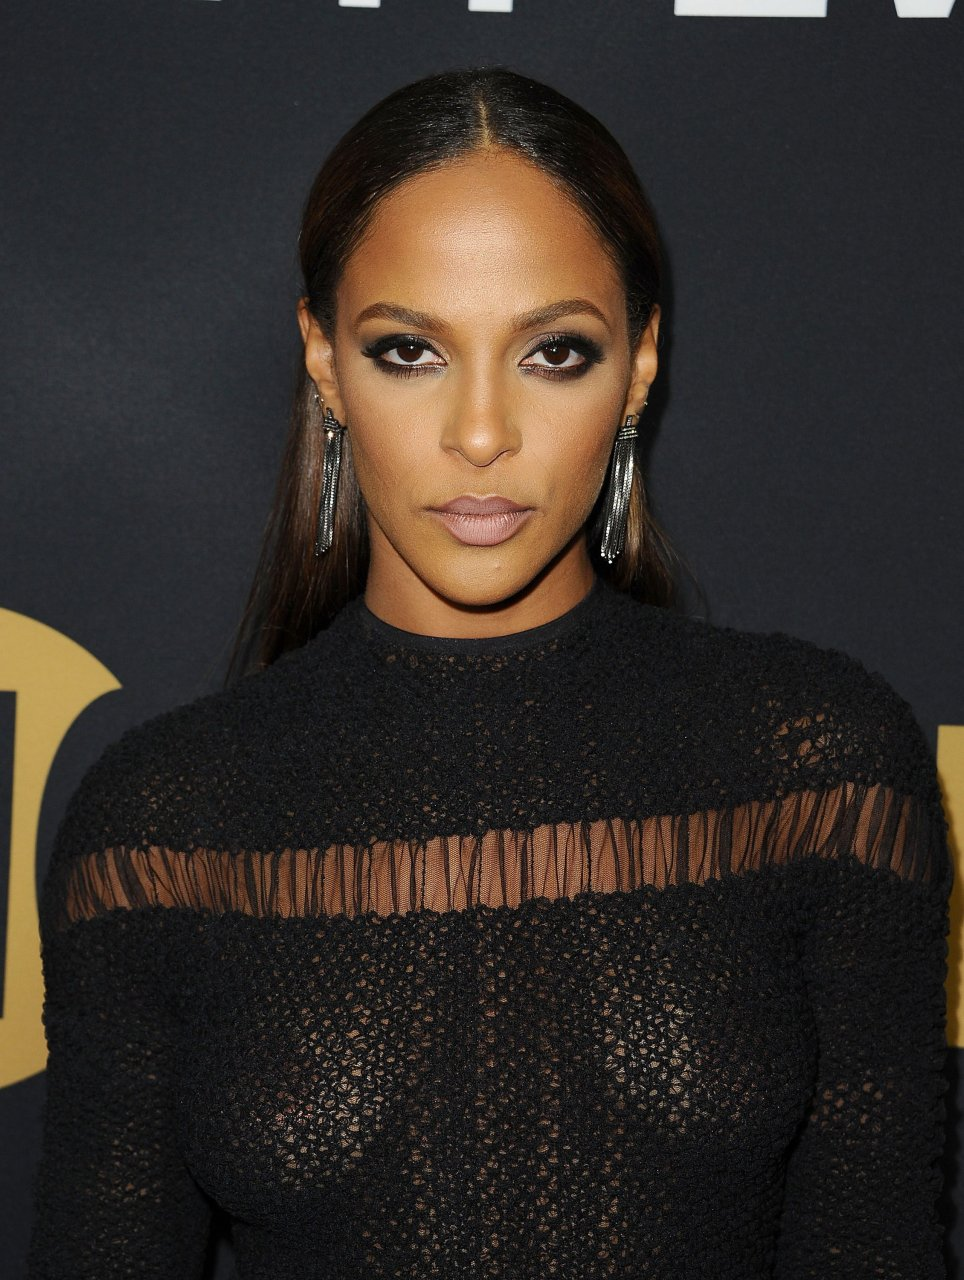 Megalyn Echikunwoke Nude Photos And Videos Thefappening